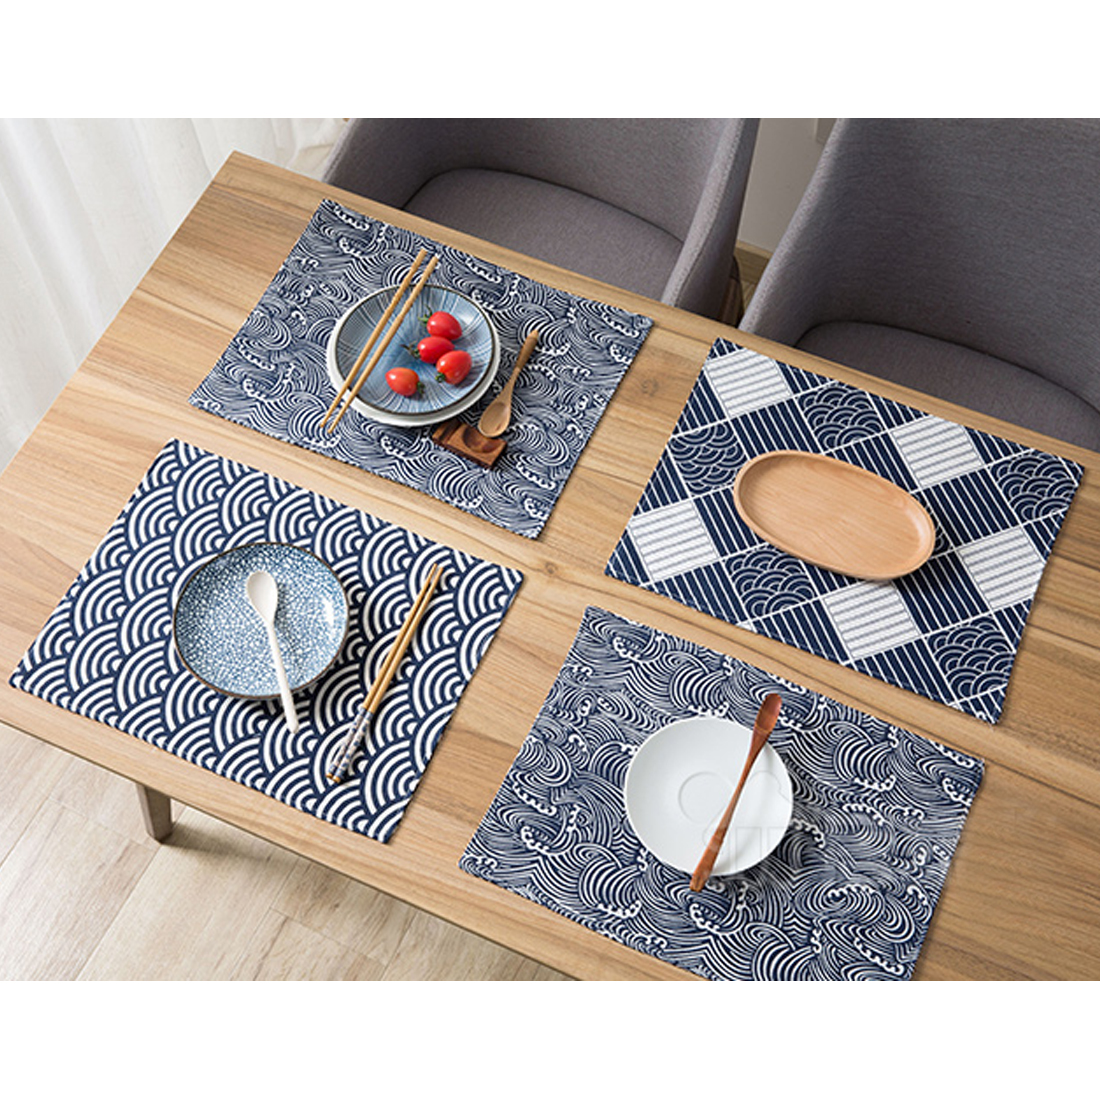 Table Mats Double Layer Totem Household